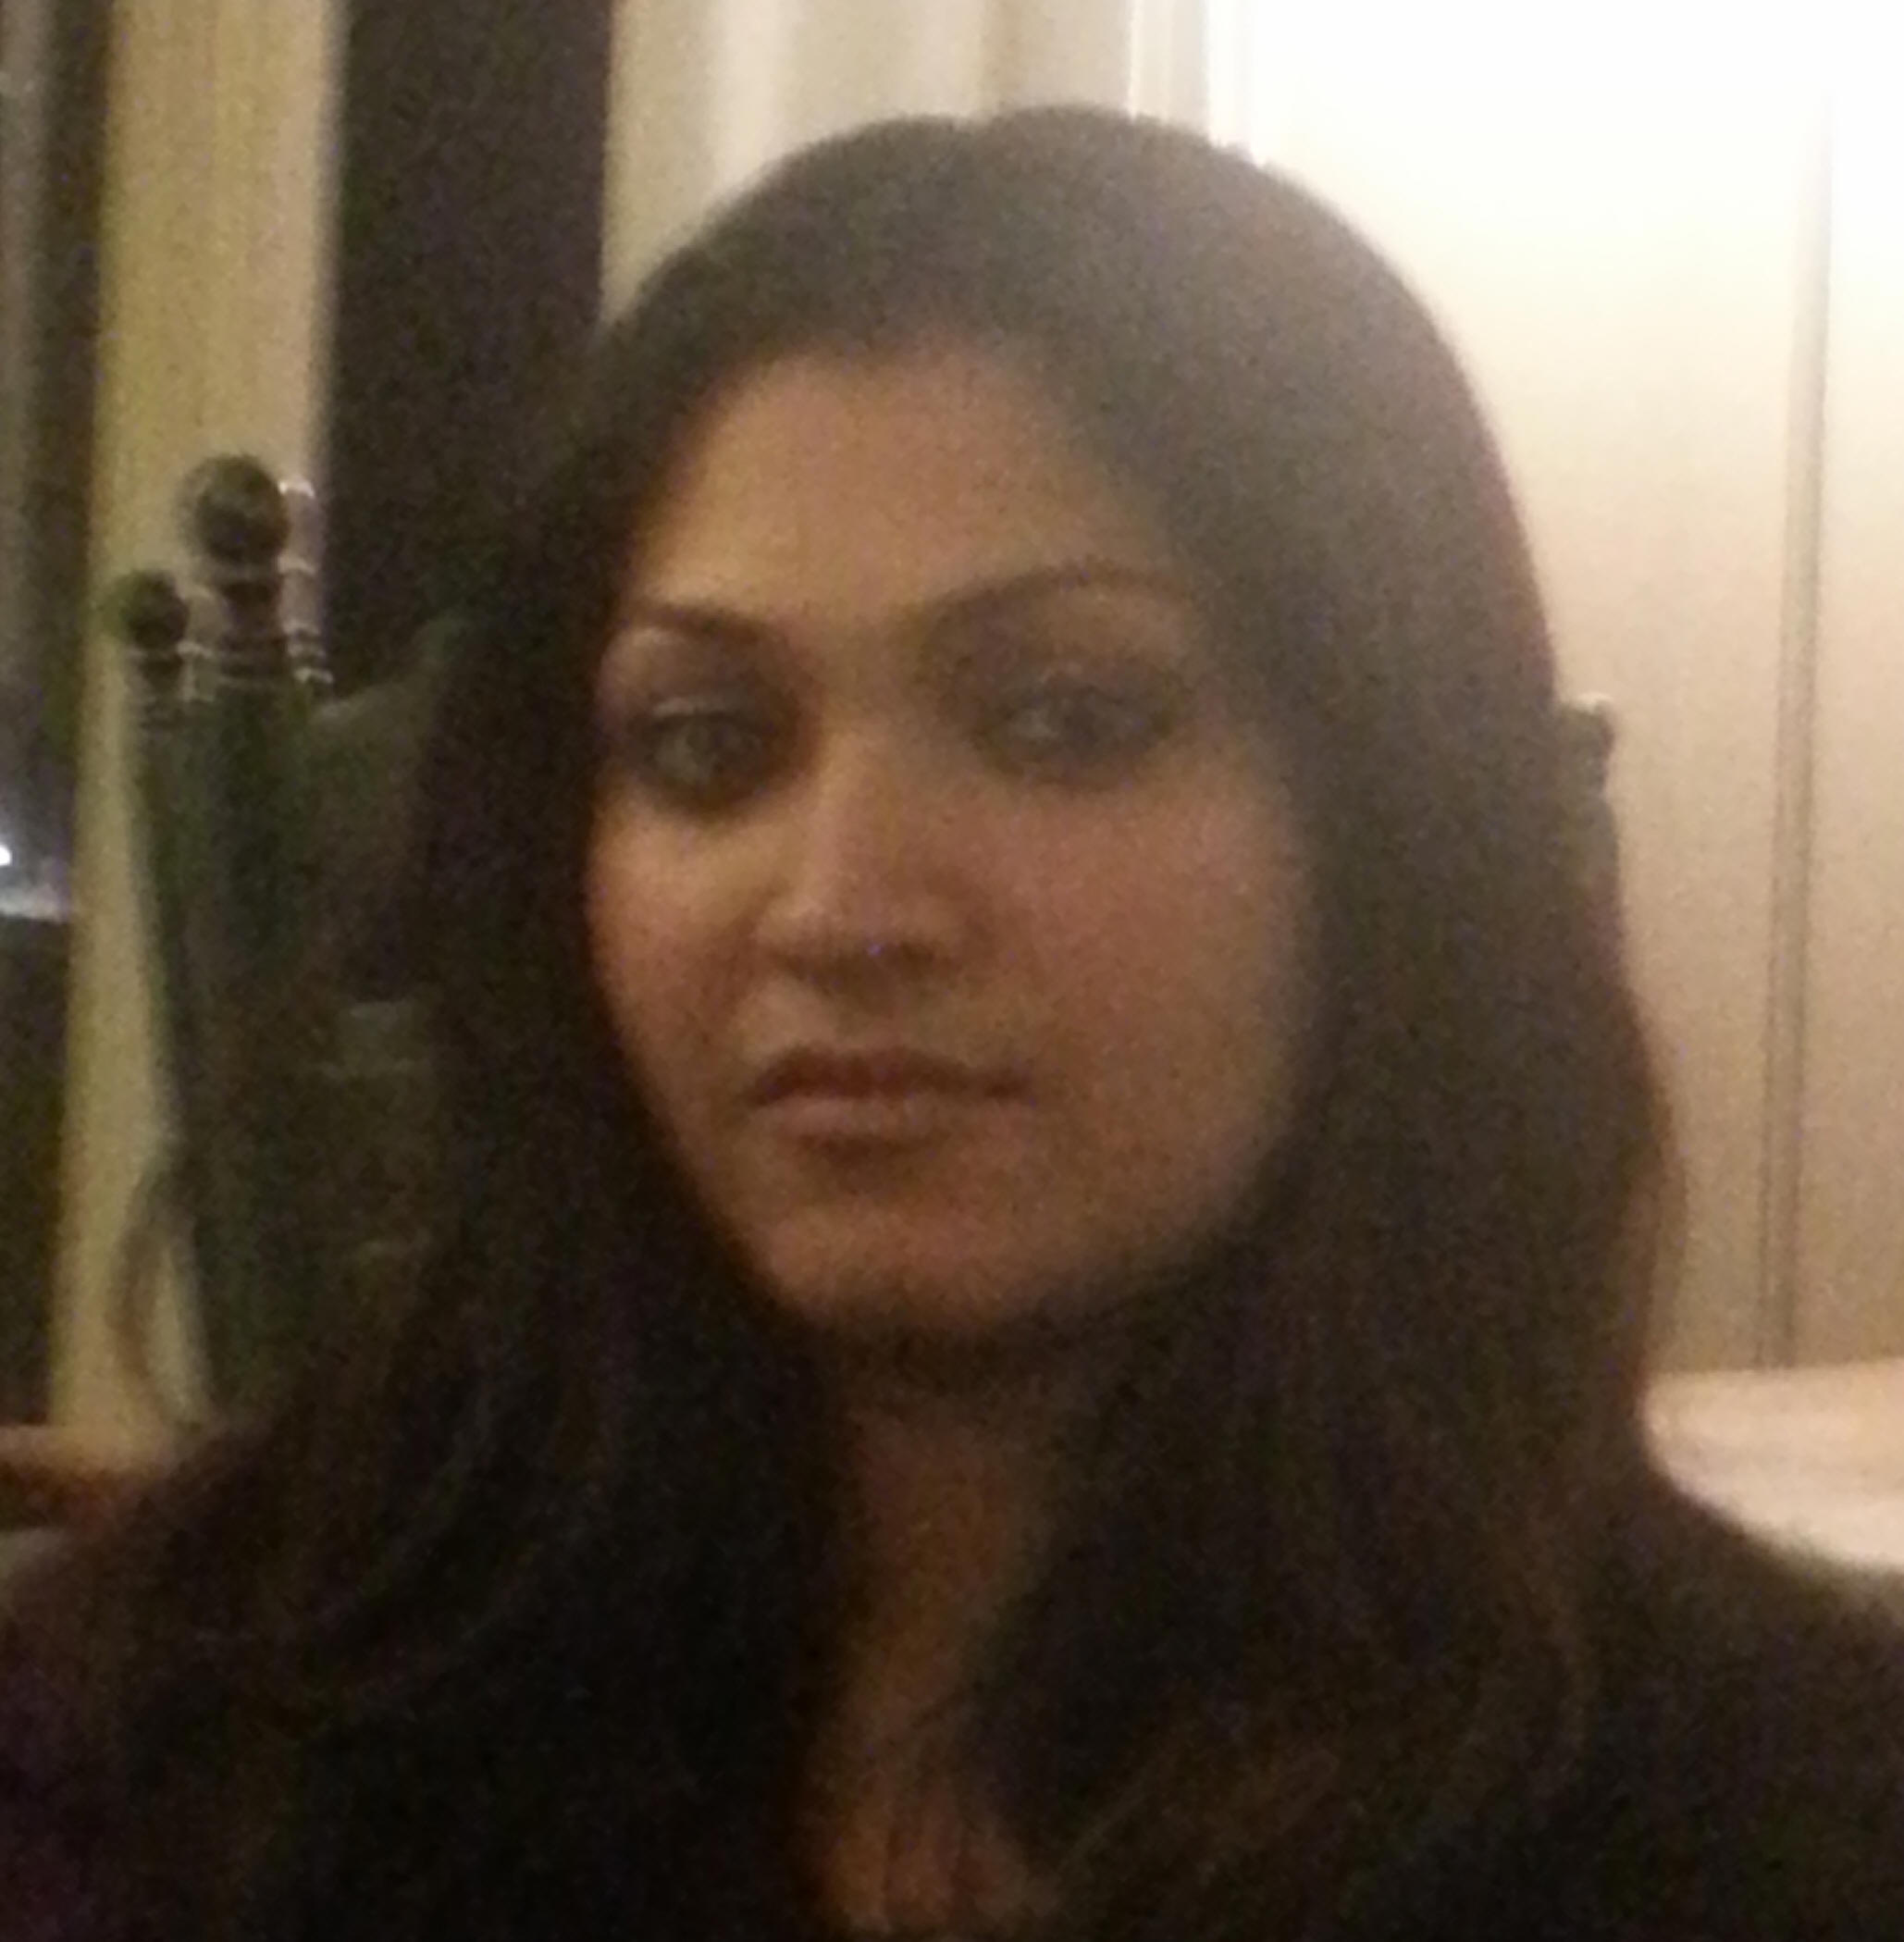 Picture: Soumita Acharya Co-Founder